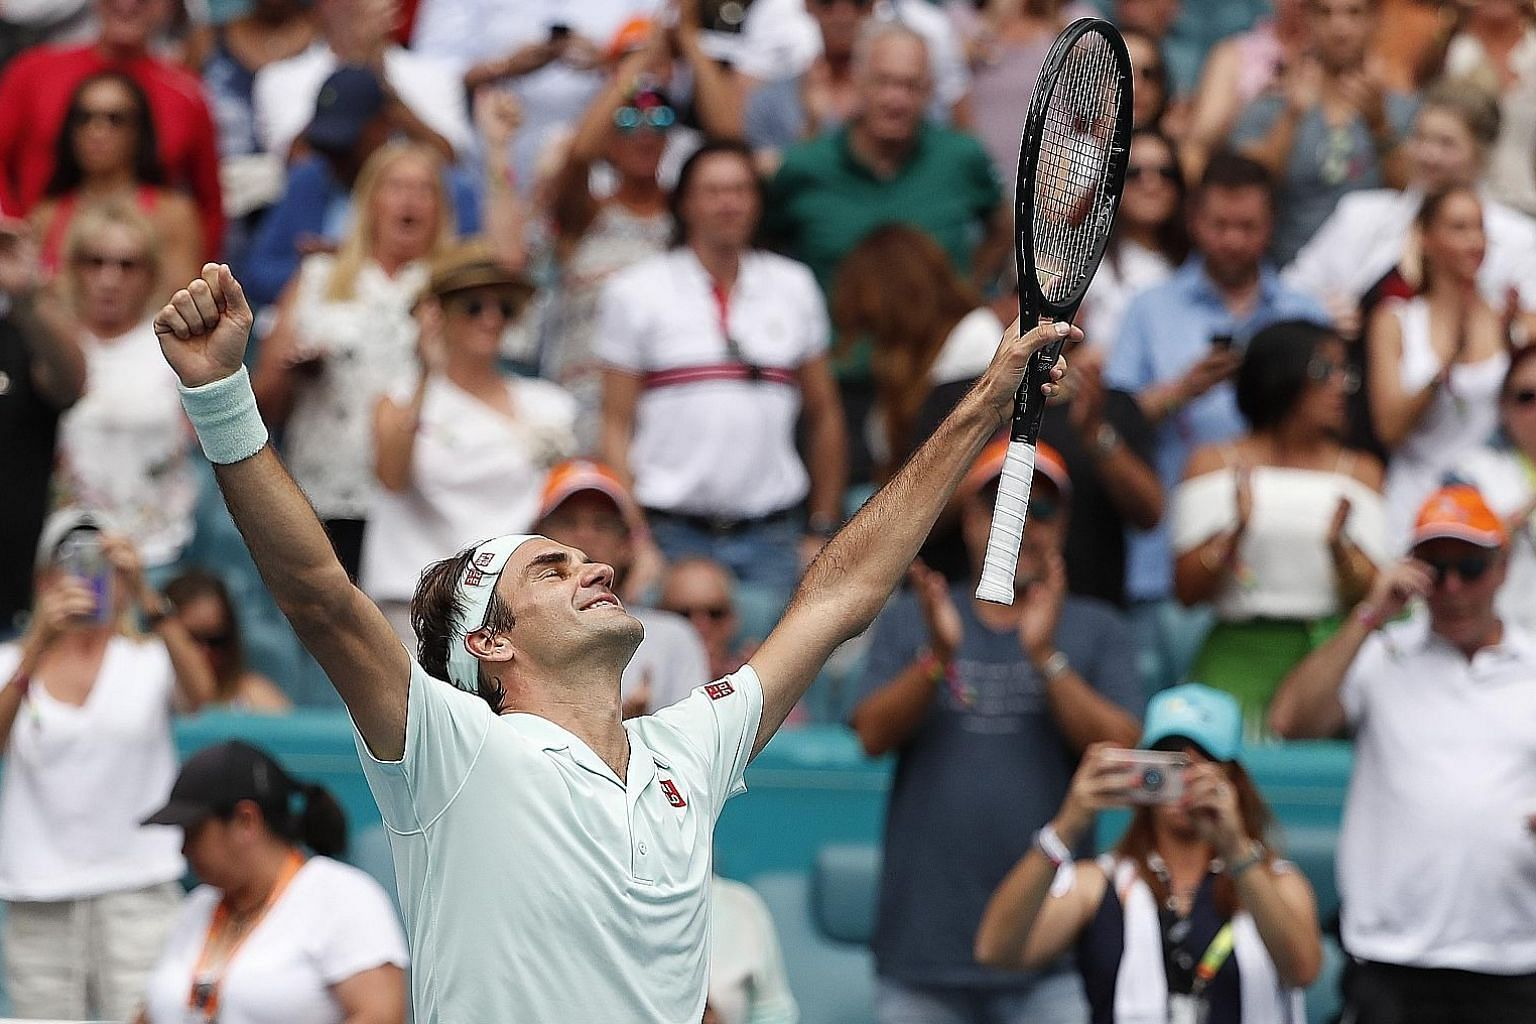 Roger Federer of Switzerland celebrating his 6-1, 6-4 victory over American John Isner in the Miami Open final on Sunday. It was his 101st career title and fourth in the tournament.